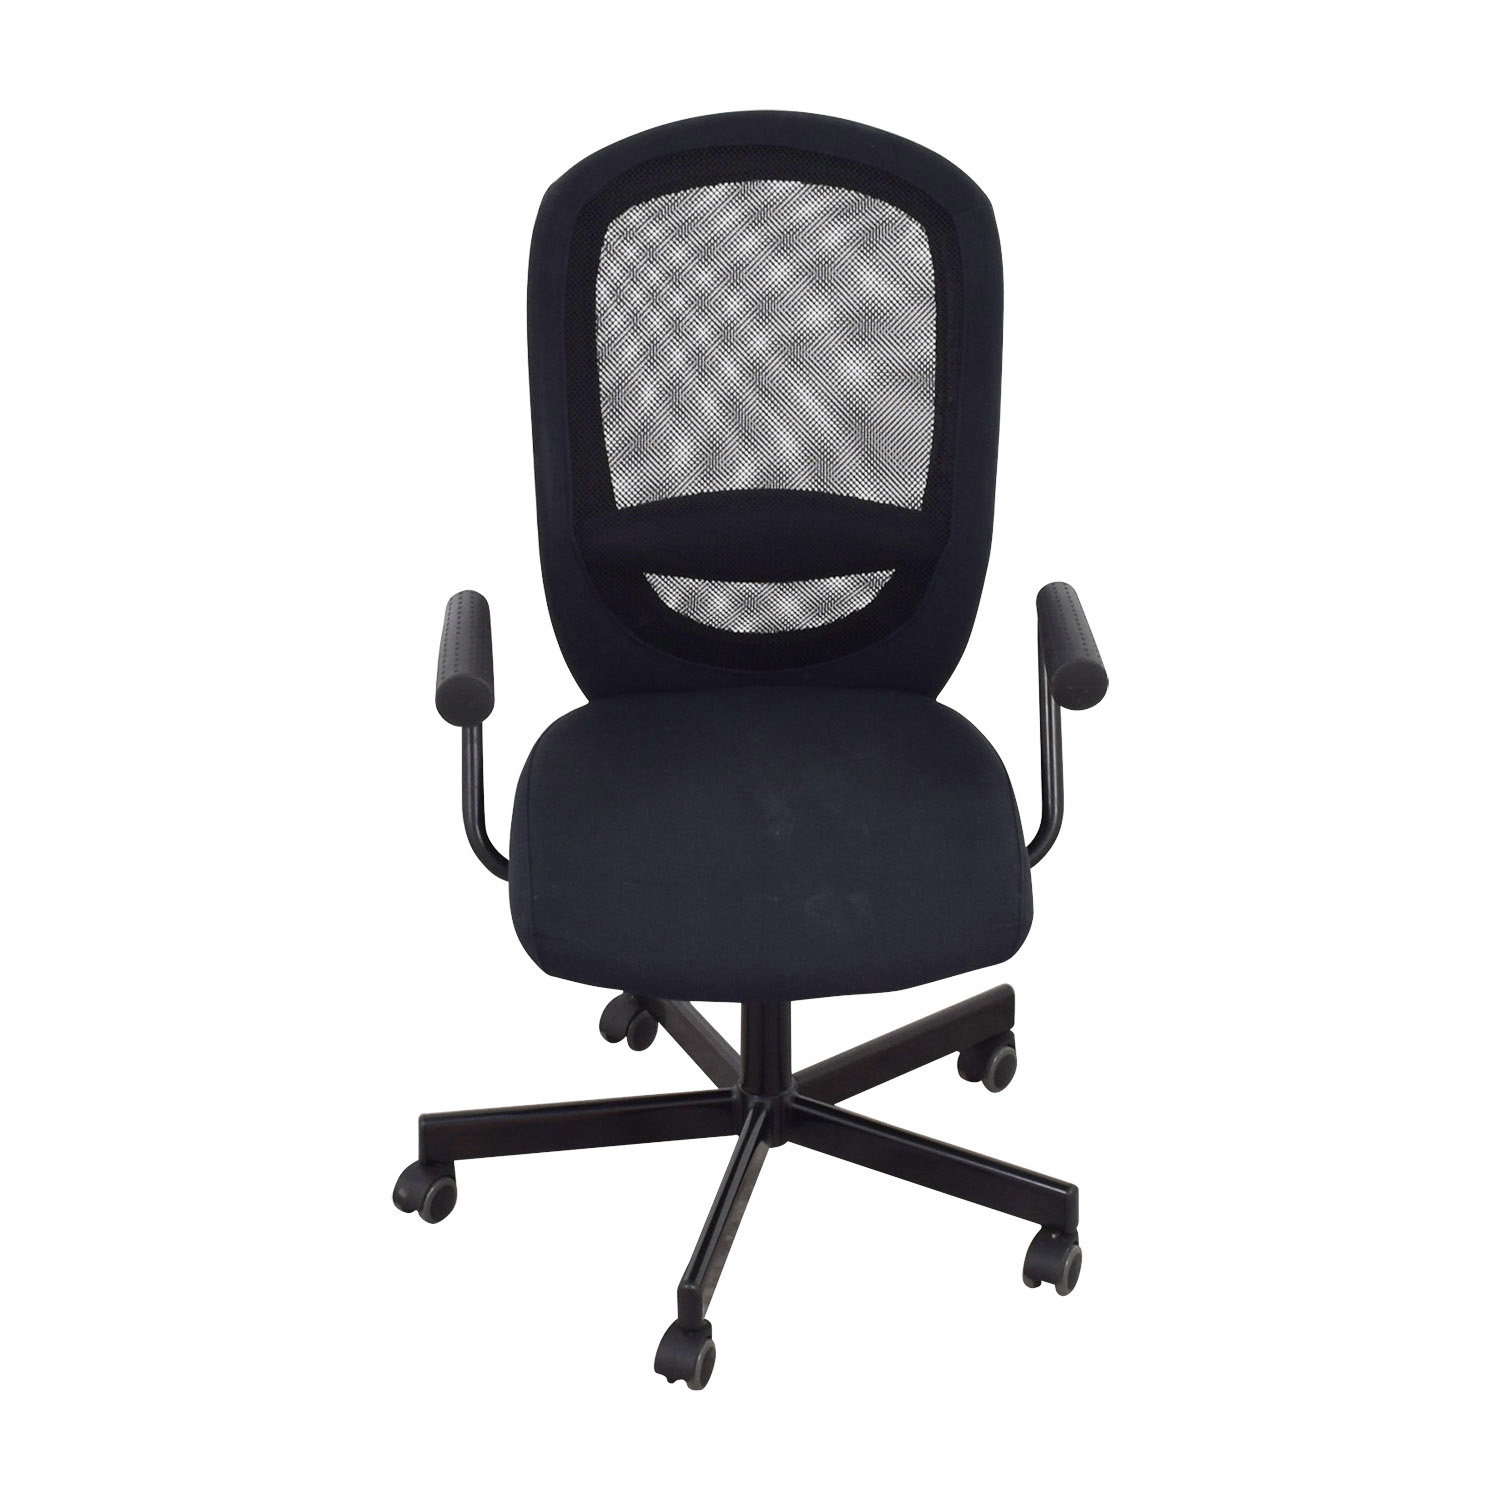 Flitan Nominell Swivel Chair with Armrests Flitan Nominell